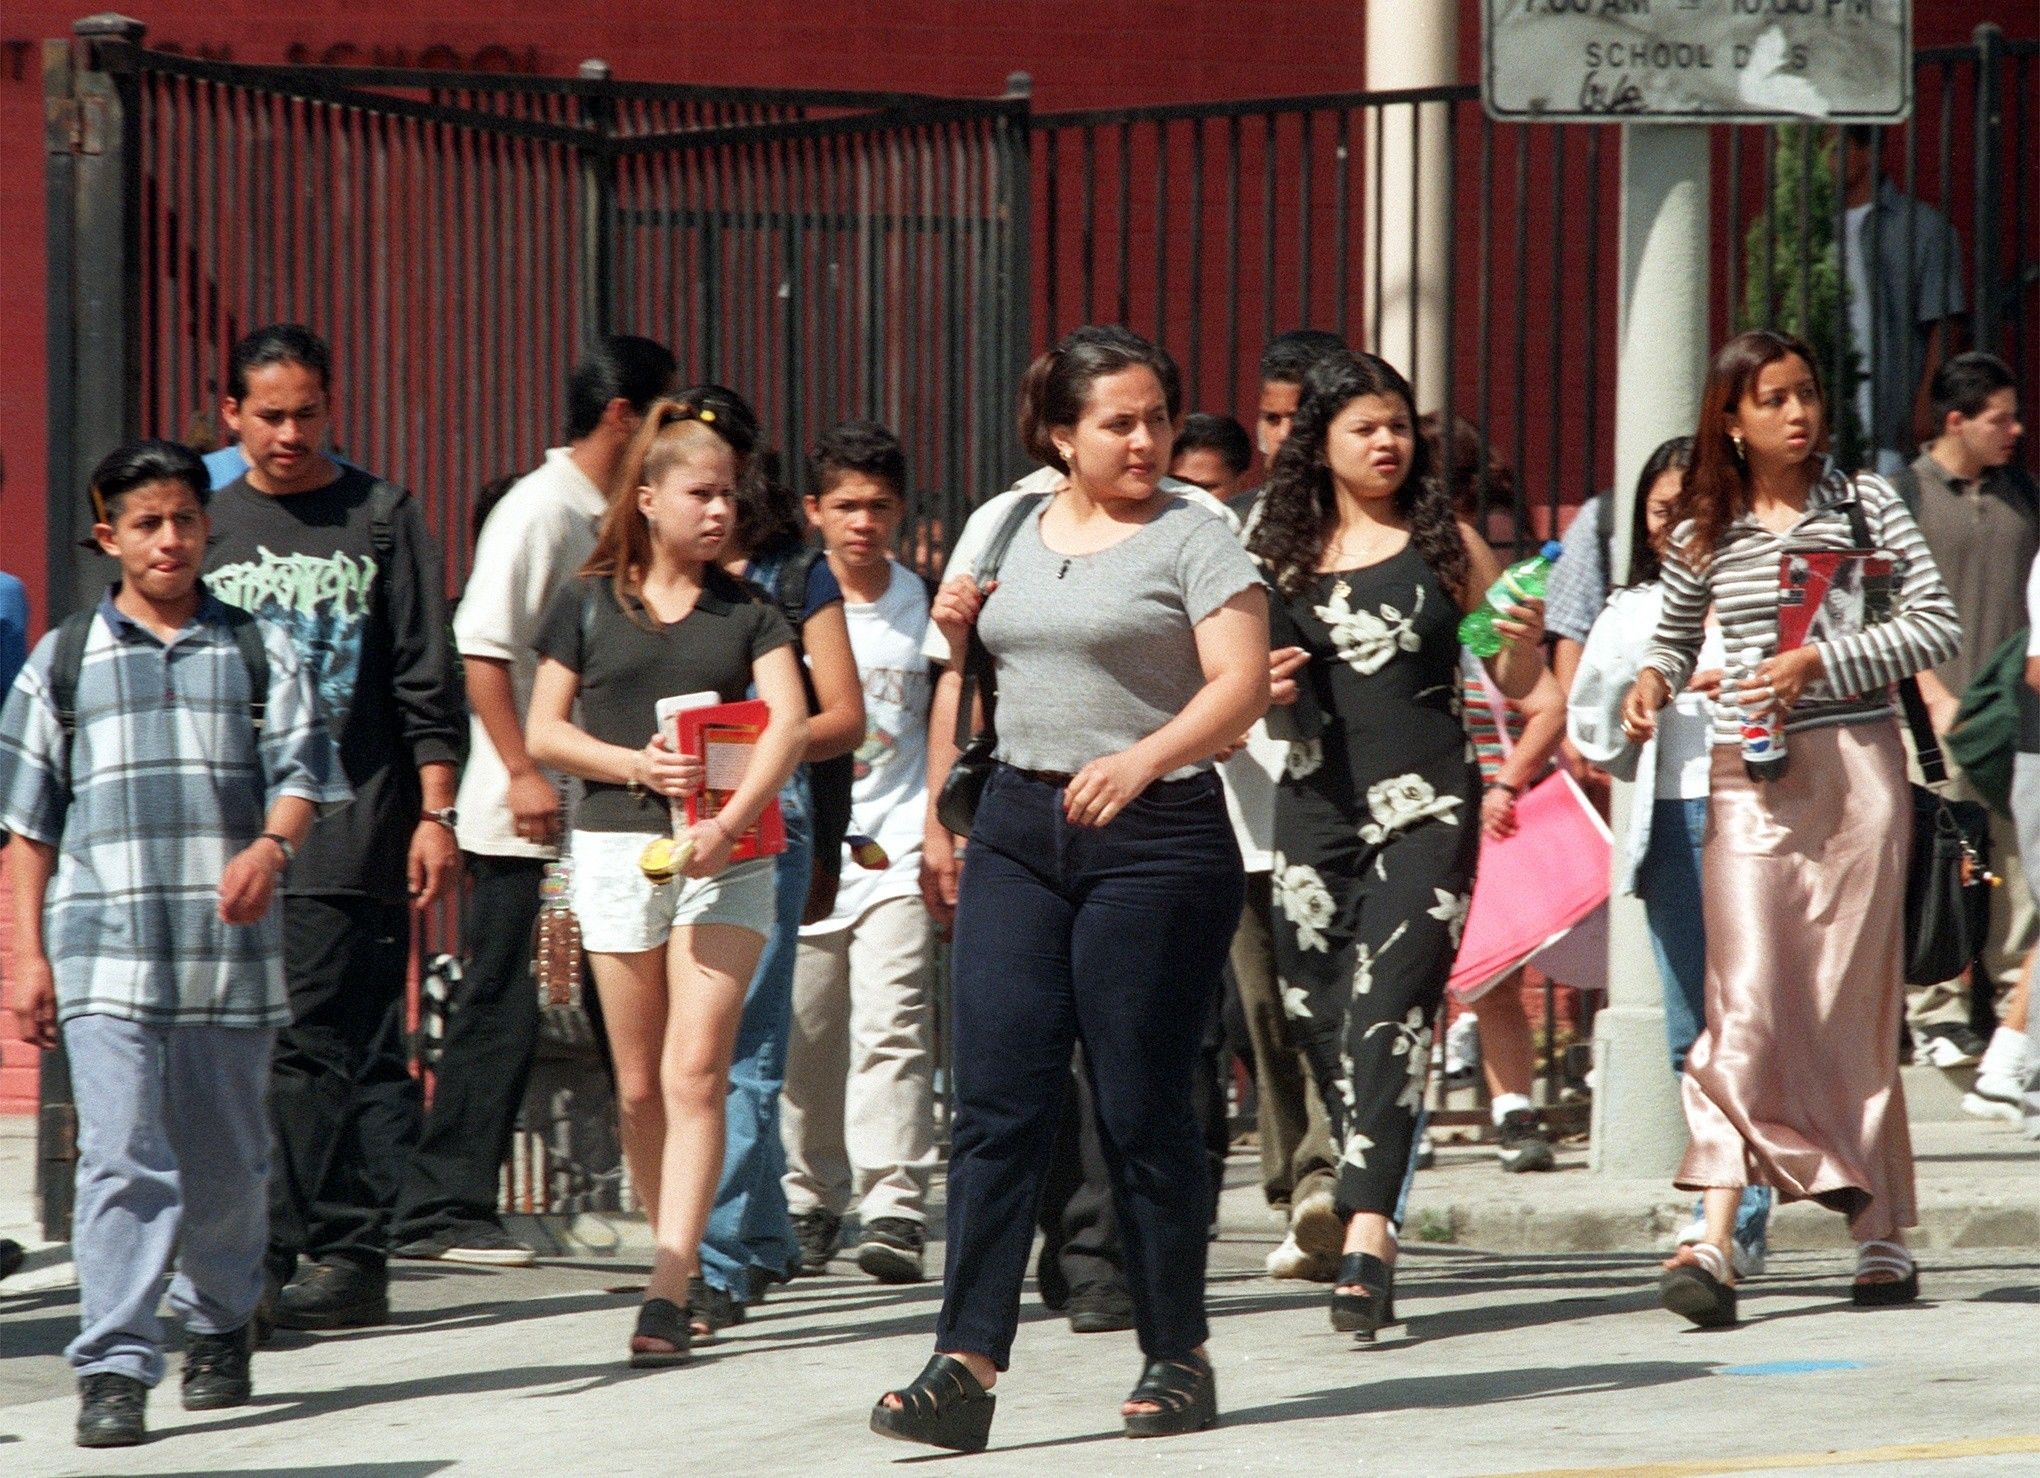 Students leaving Belmont High School, west of downtown, in 1997. Before the new schools opened, it served more than 5,000 students for nine years. Others had to be bused out of the neighborhood.